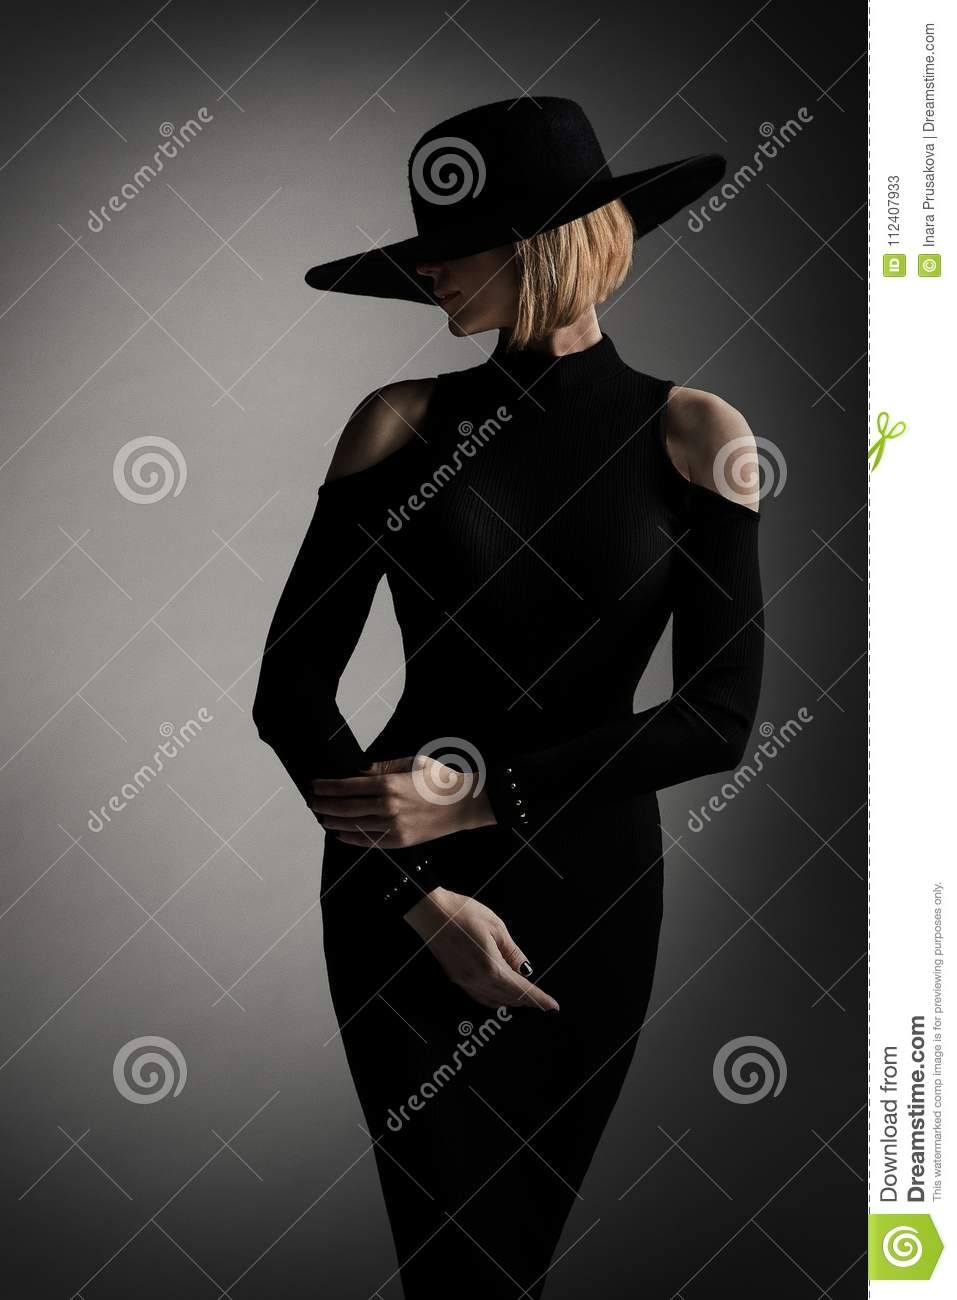 Sombrero del borde de Black Dress Wide del modelo de moda, mujer retra elegante